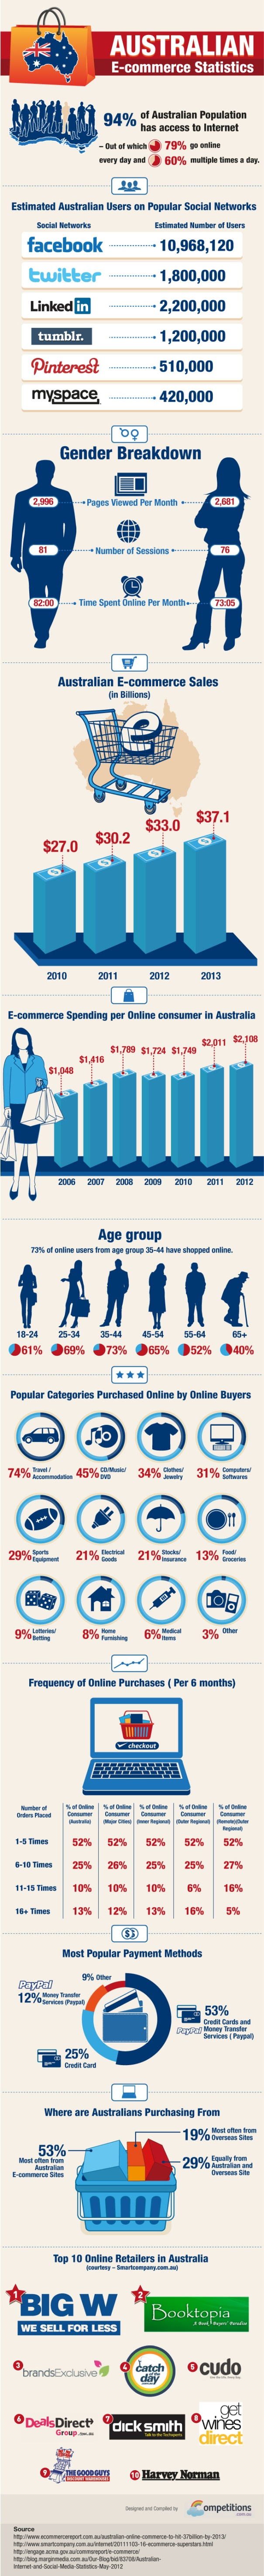 Why E-commerce Is a booming business in Australia